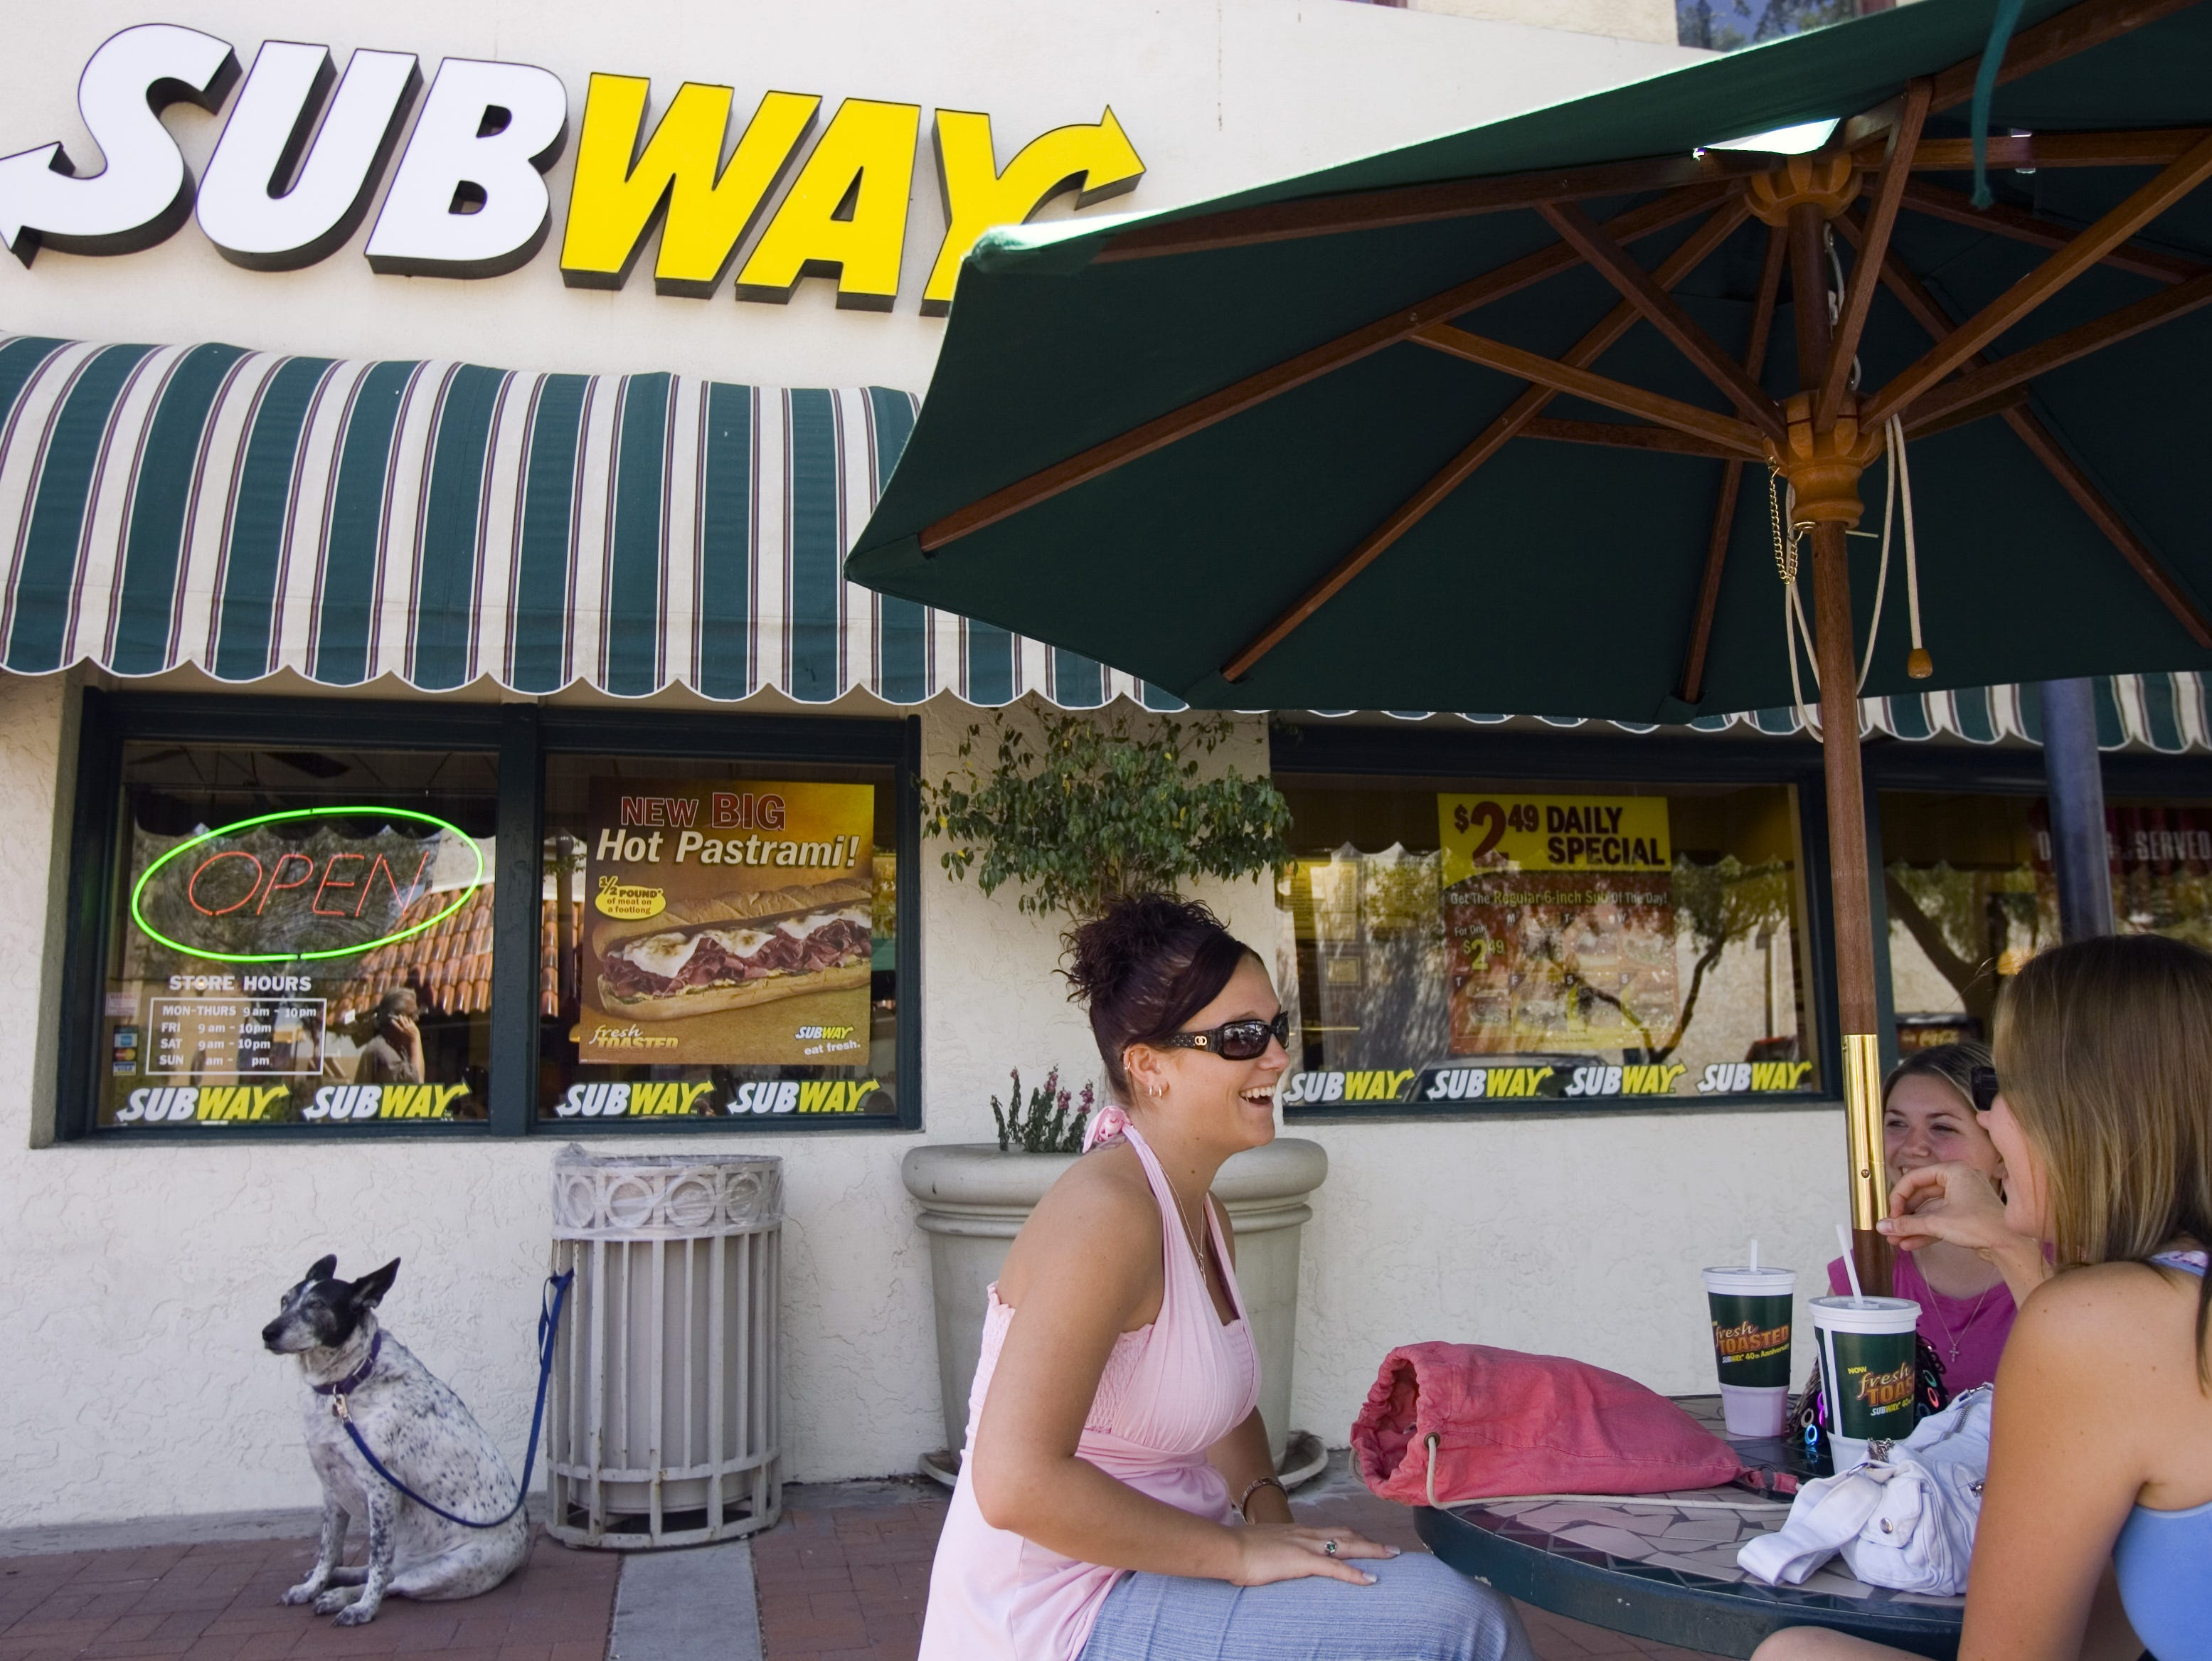 No. 38 (tie): Subway | Fast-food restaurants | 2019 employees: 4,500e (estimated by Arizona Republic) | 2018 employees: 4,500 | Ownership: Private | Headquarters: Milford, Connecticut | www.subway.com